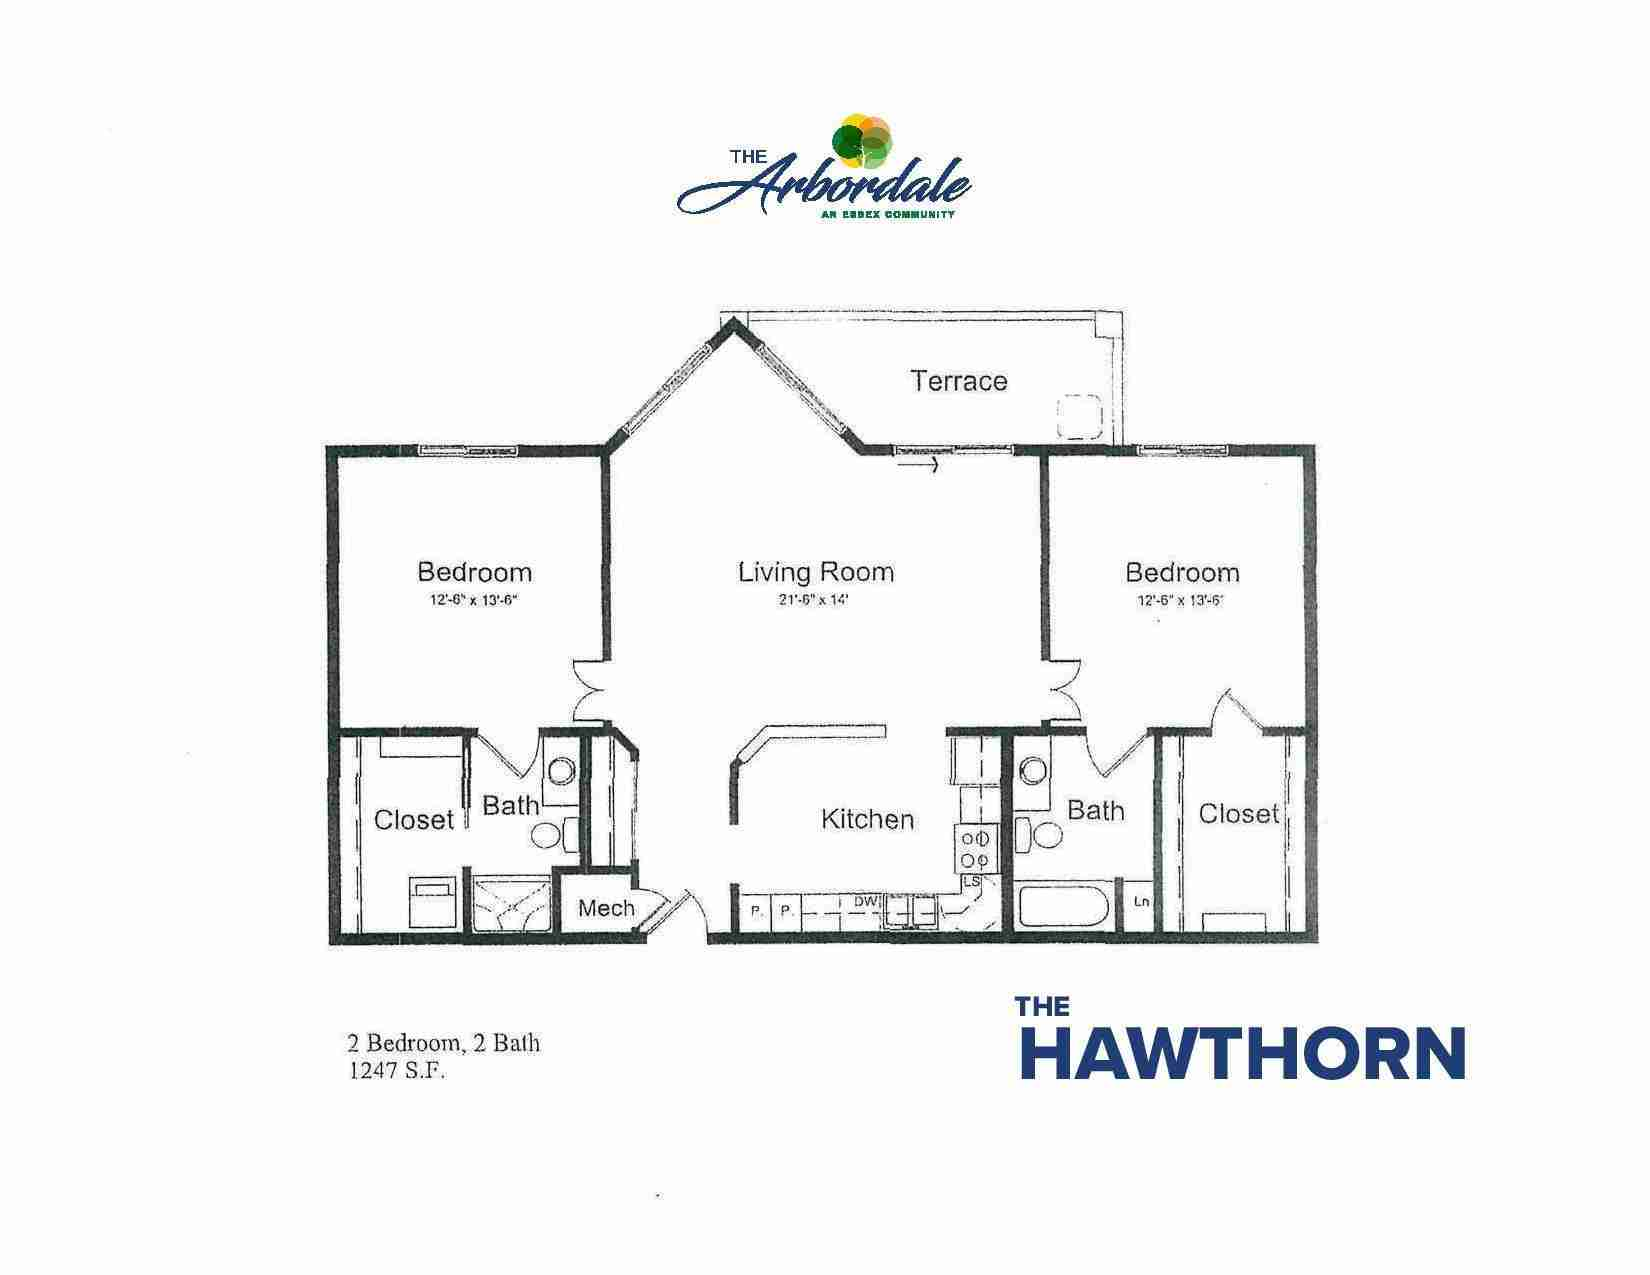 the hawthorn floor plan, 2 bedroom, 2 bath, 1247 sq ft